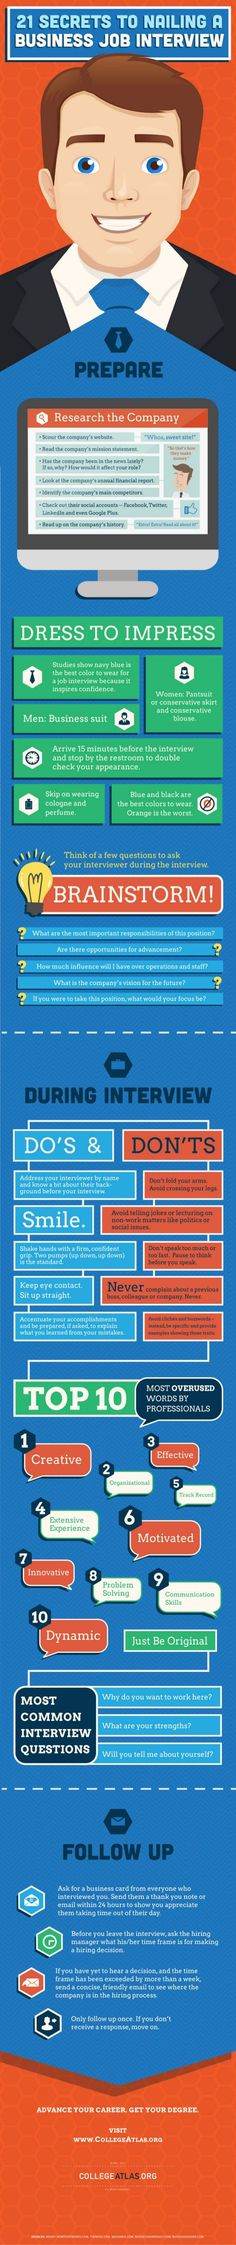 21 secrets to nailing a job interview - what color is best to wear, what questions to ask, body language to avoid, and more #infographic #Jobinterviewquestions